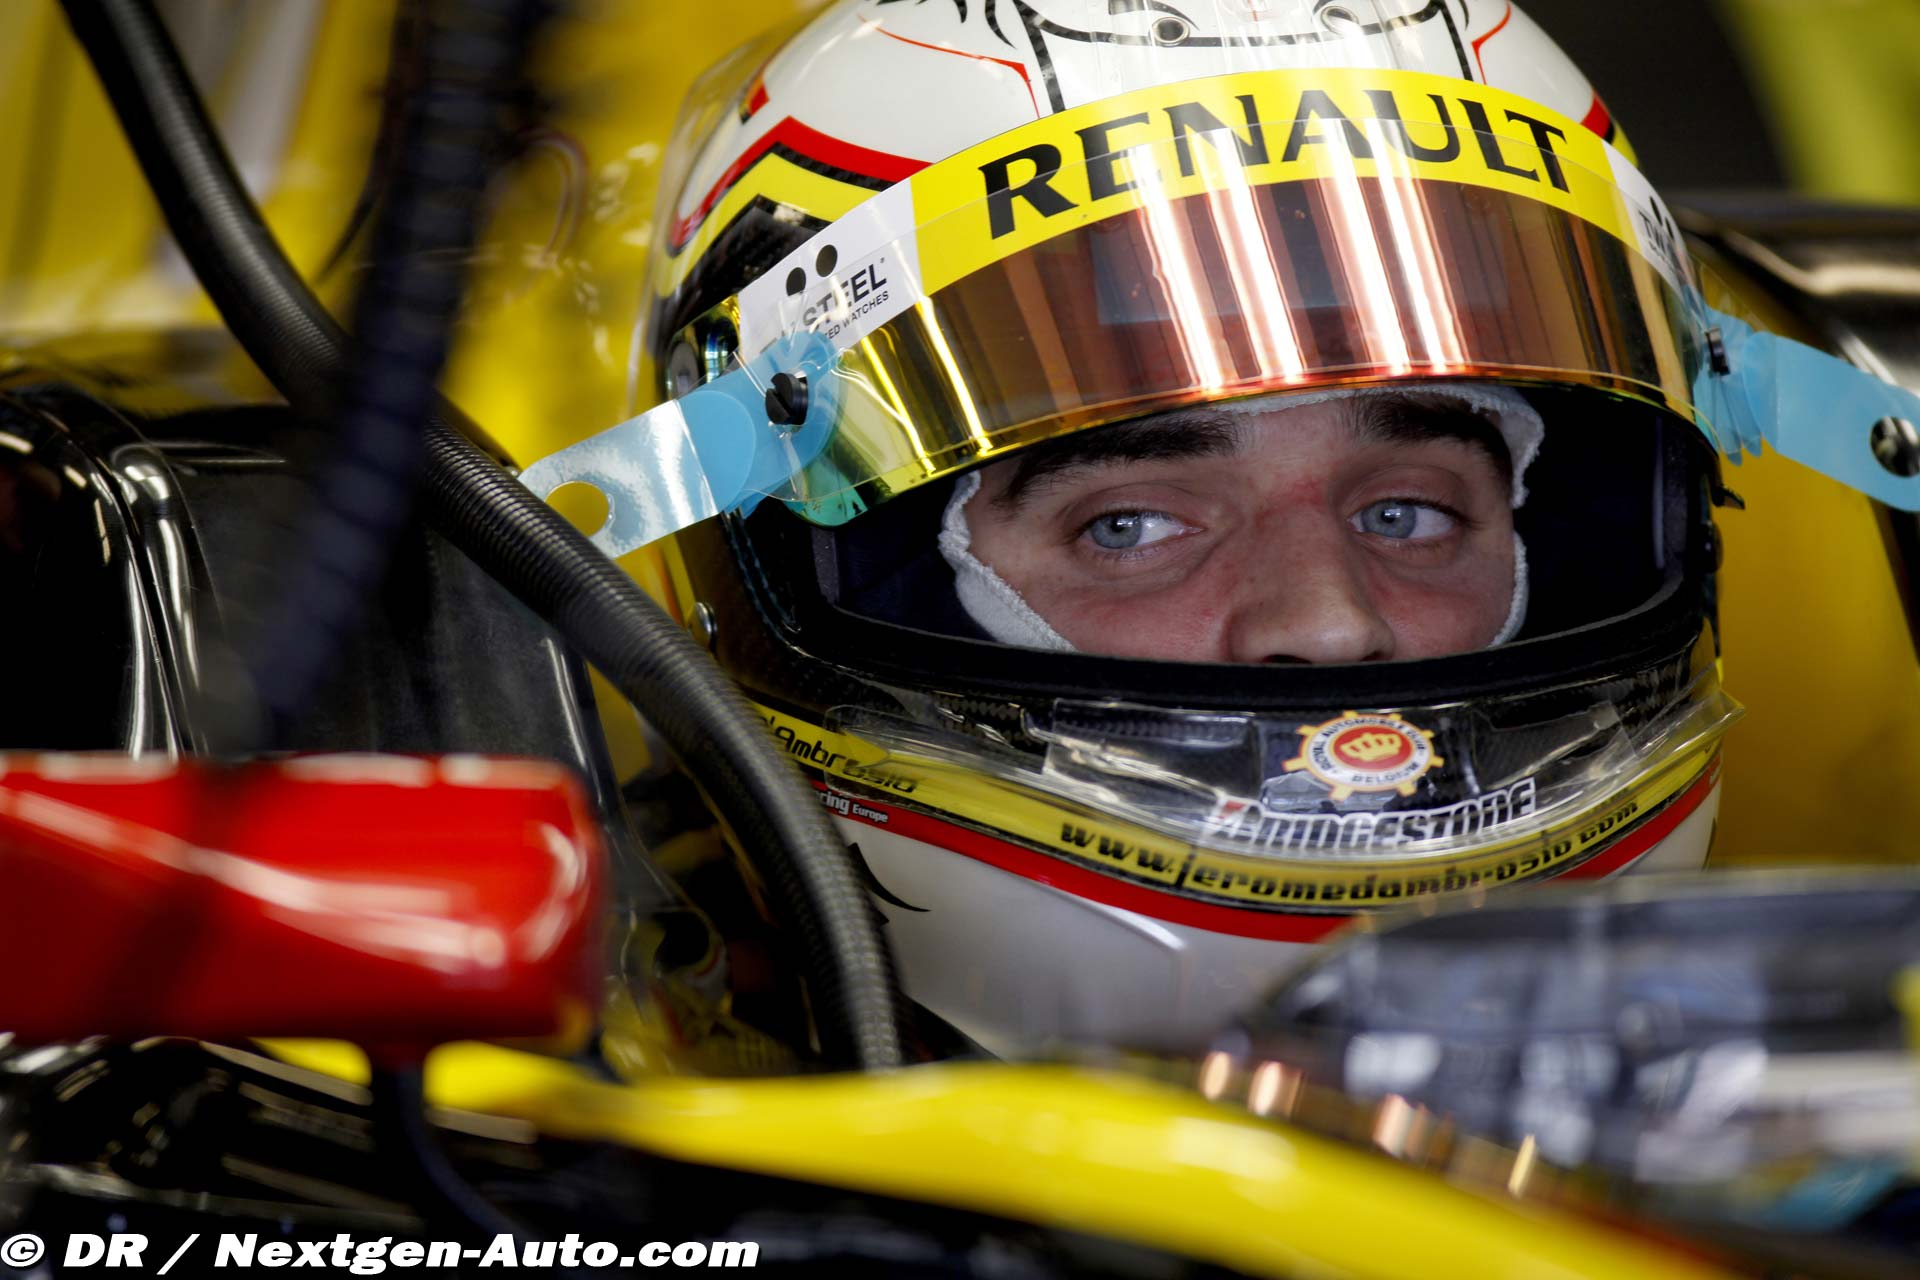 http://www.superf1.be/spip/IMG/jpg/Jerome_-_Abou_Dhabi_-_17_novembre_2010_-_Rookie_days_avec_Renault_F1_Team_-_1.jpg